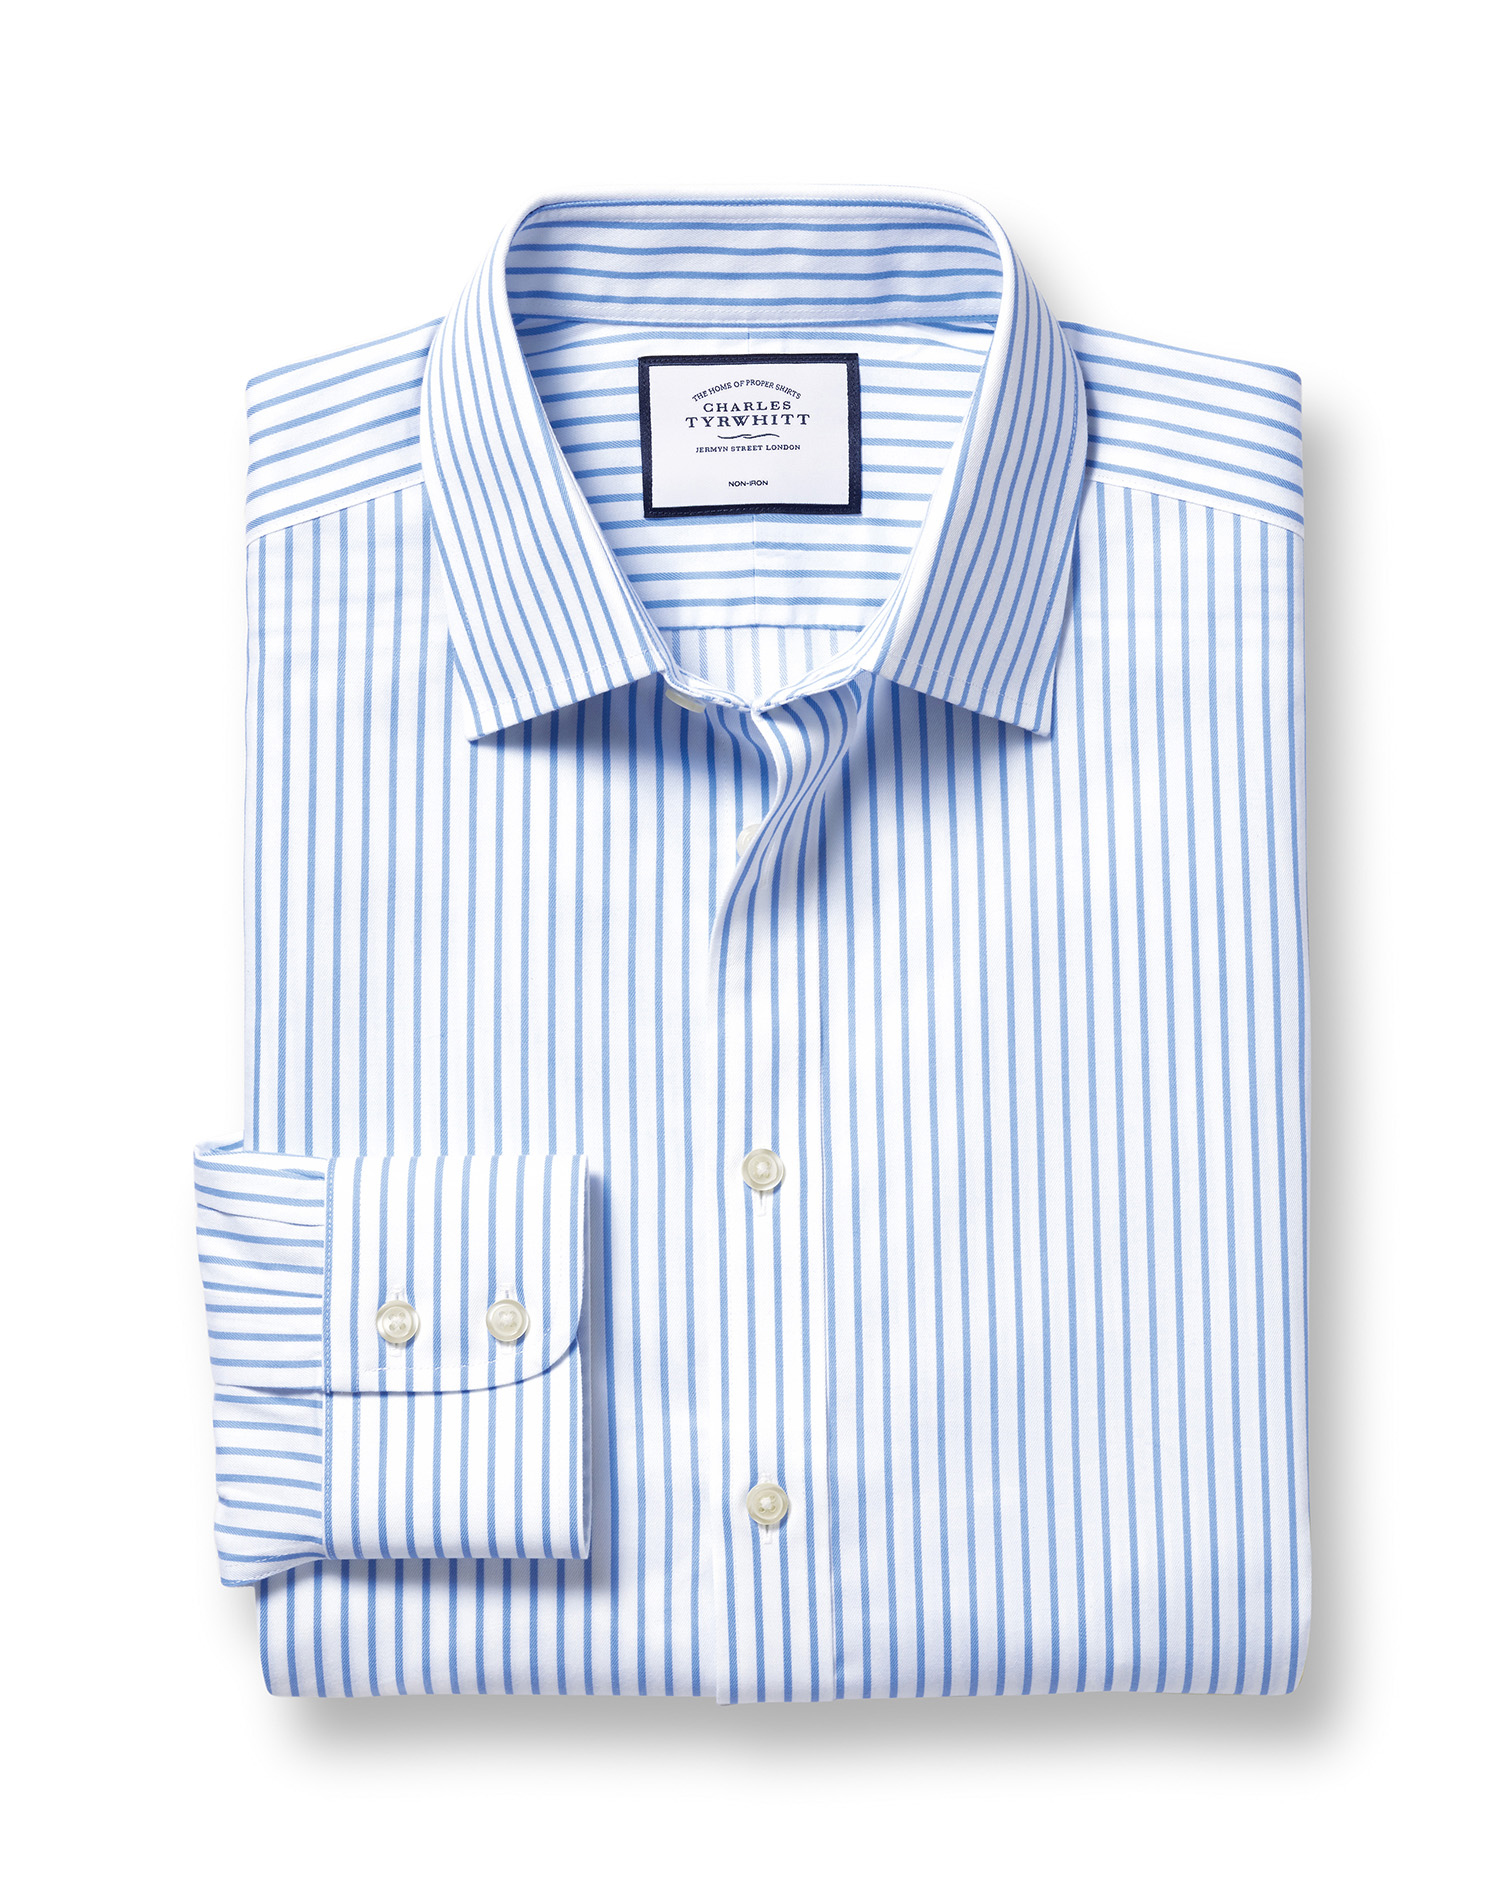 Extra Slim Fit Non-Iron Twill White and Sky Blue Stripe Cotton Formal Shirt Double Cuff Size 17/36 b